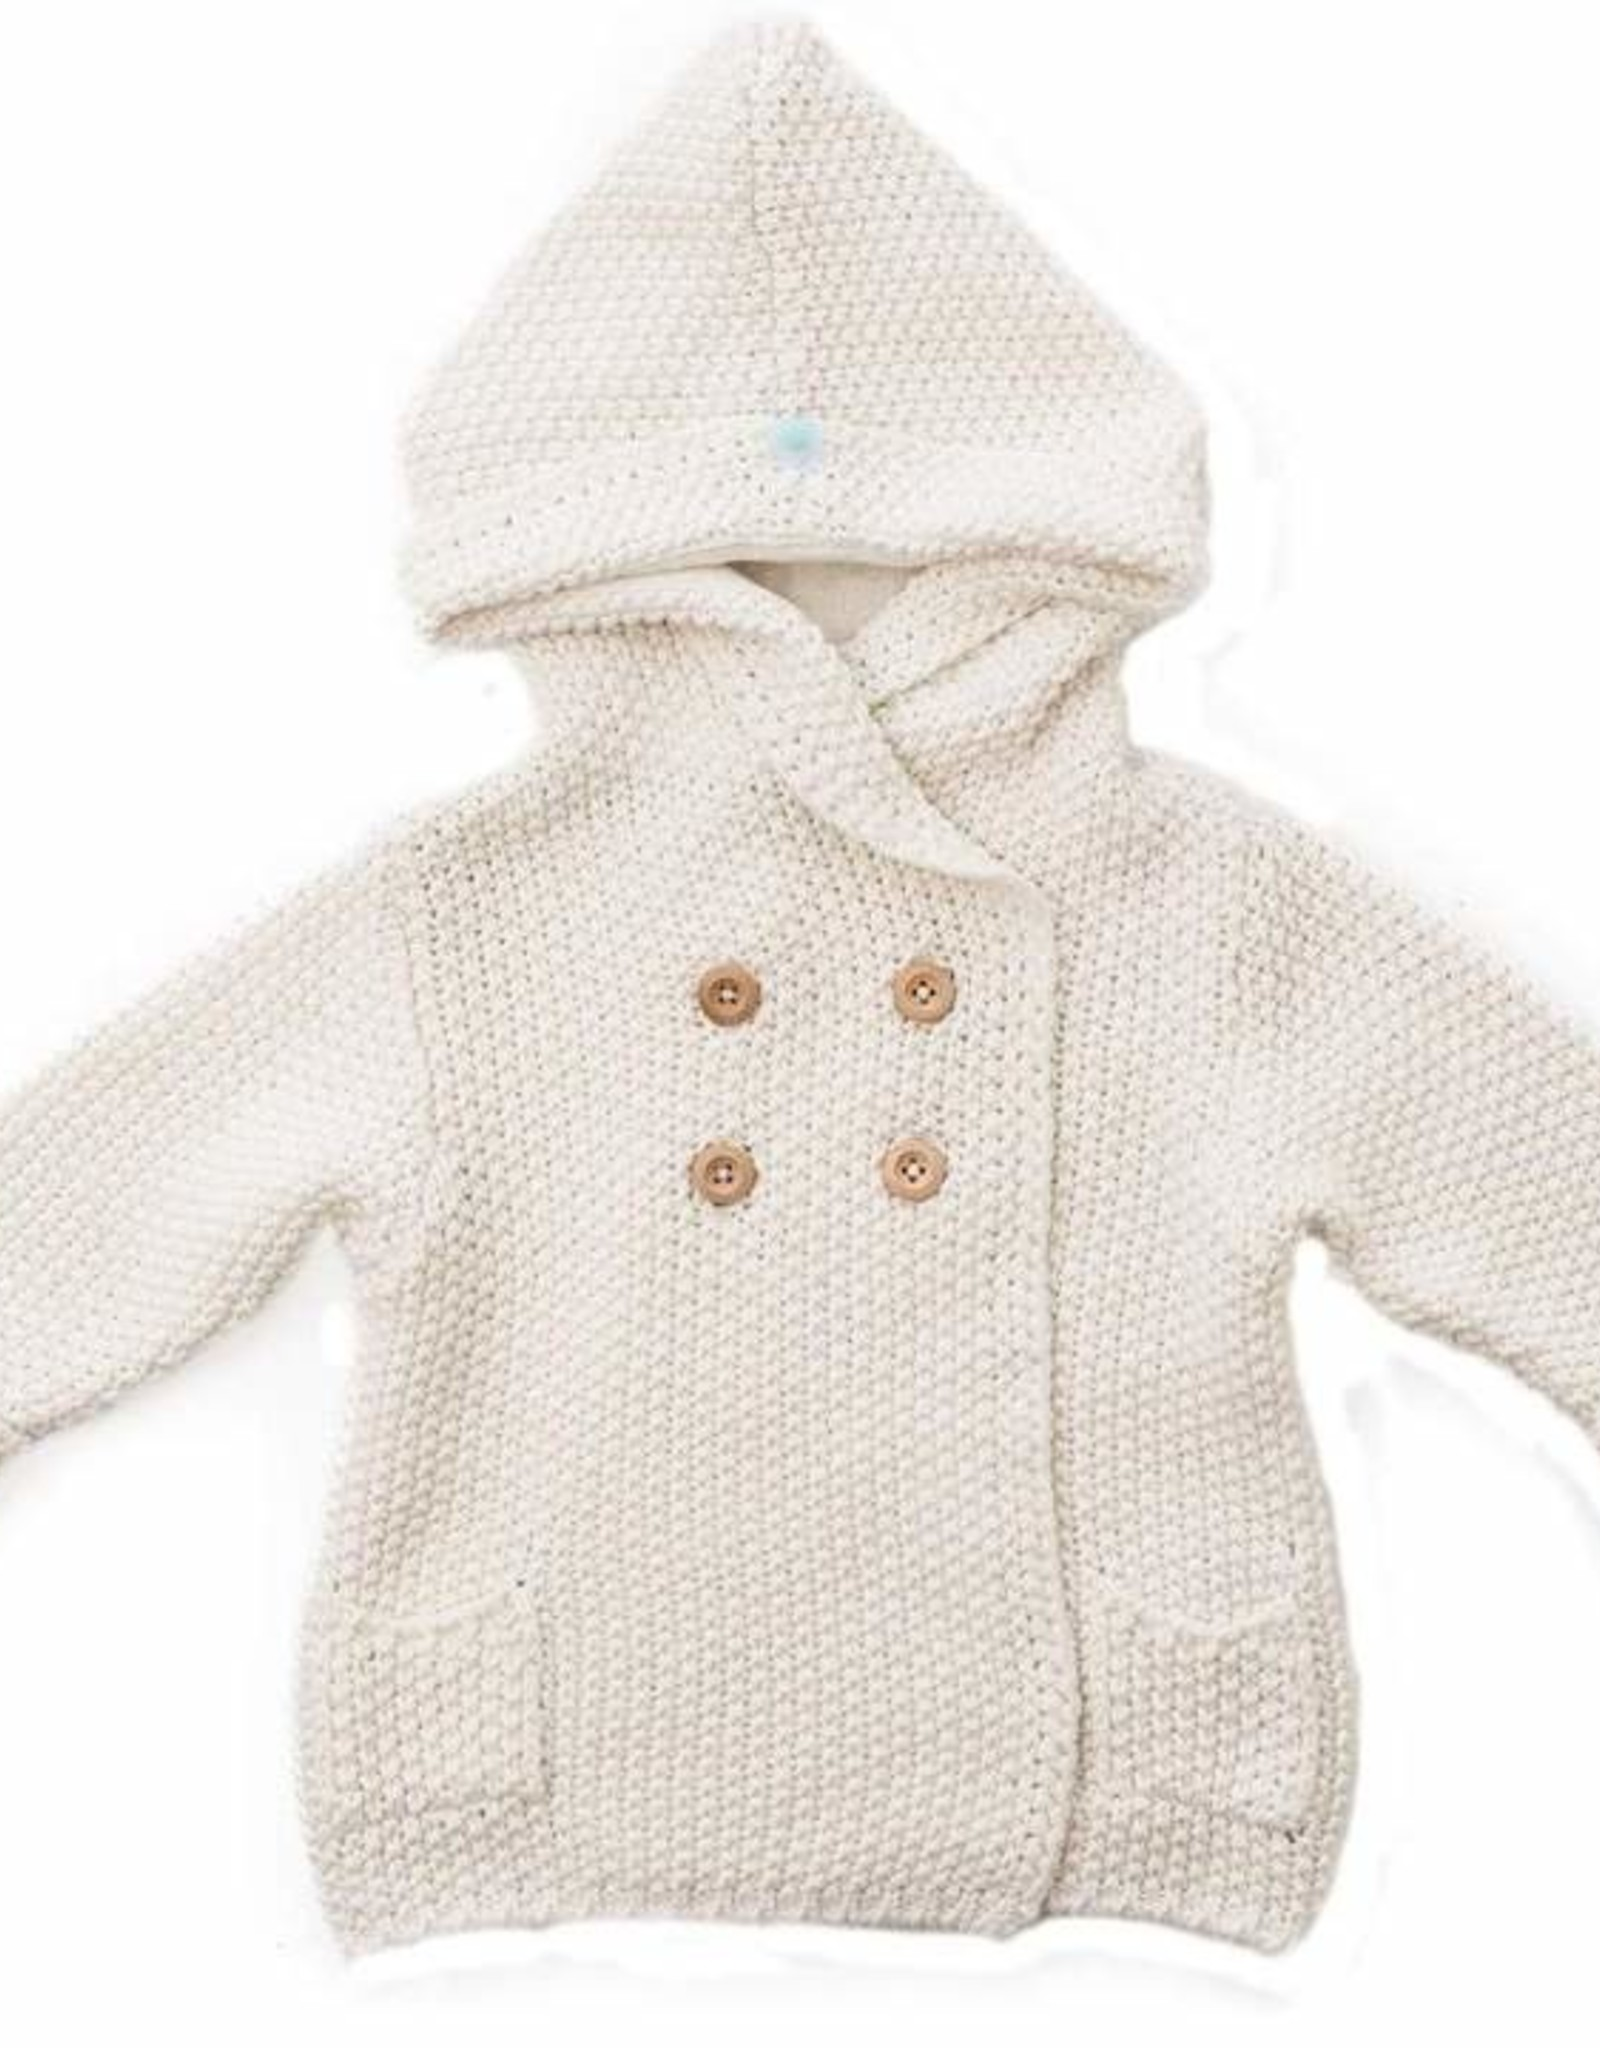 Crochet Knit Hoodie ivory 6-12 months